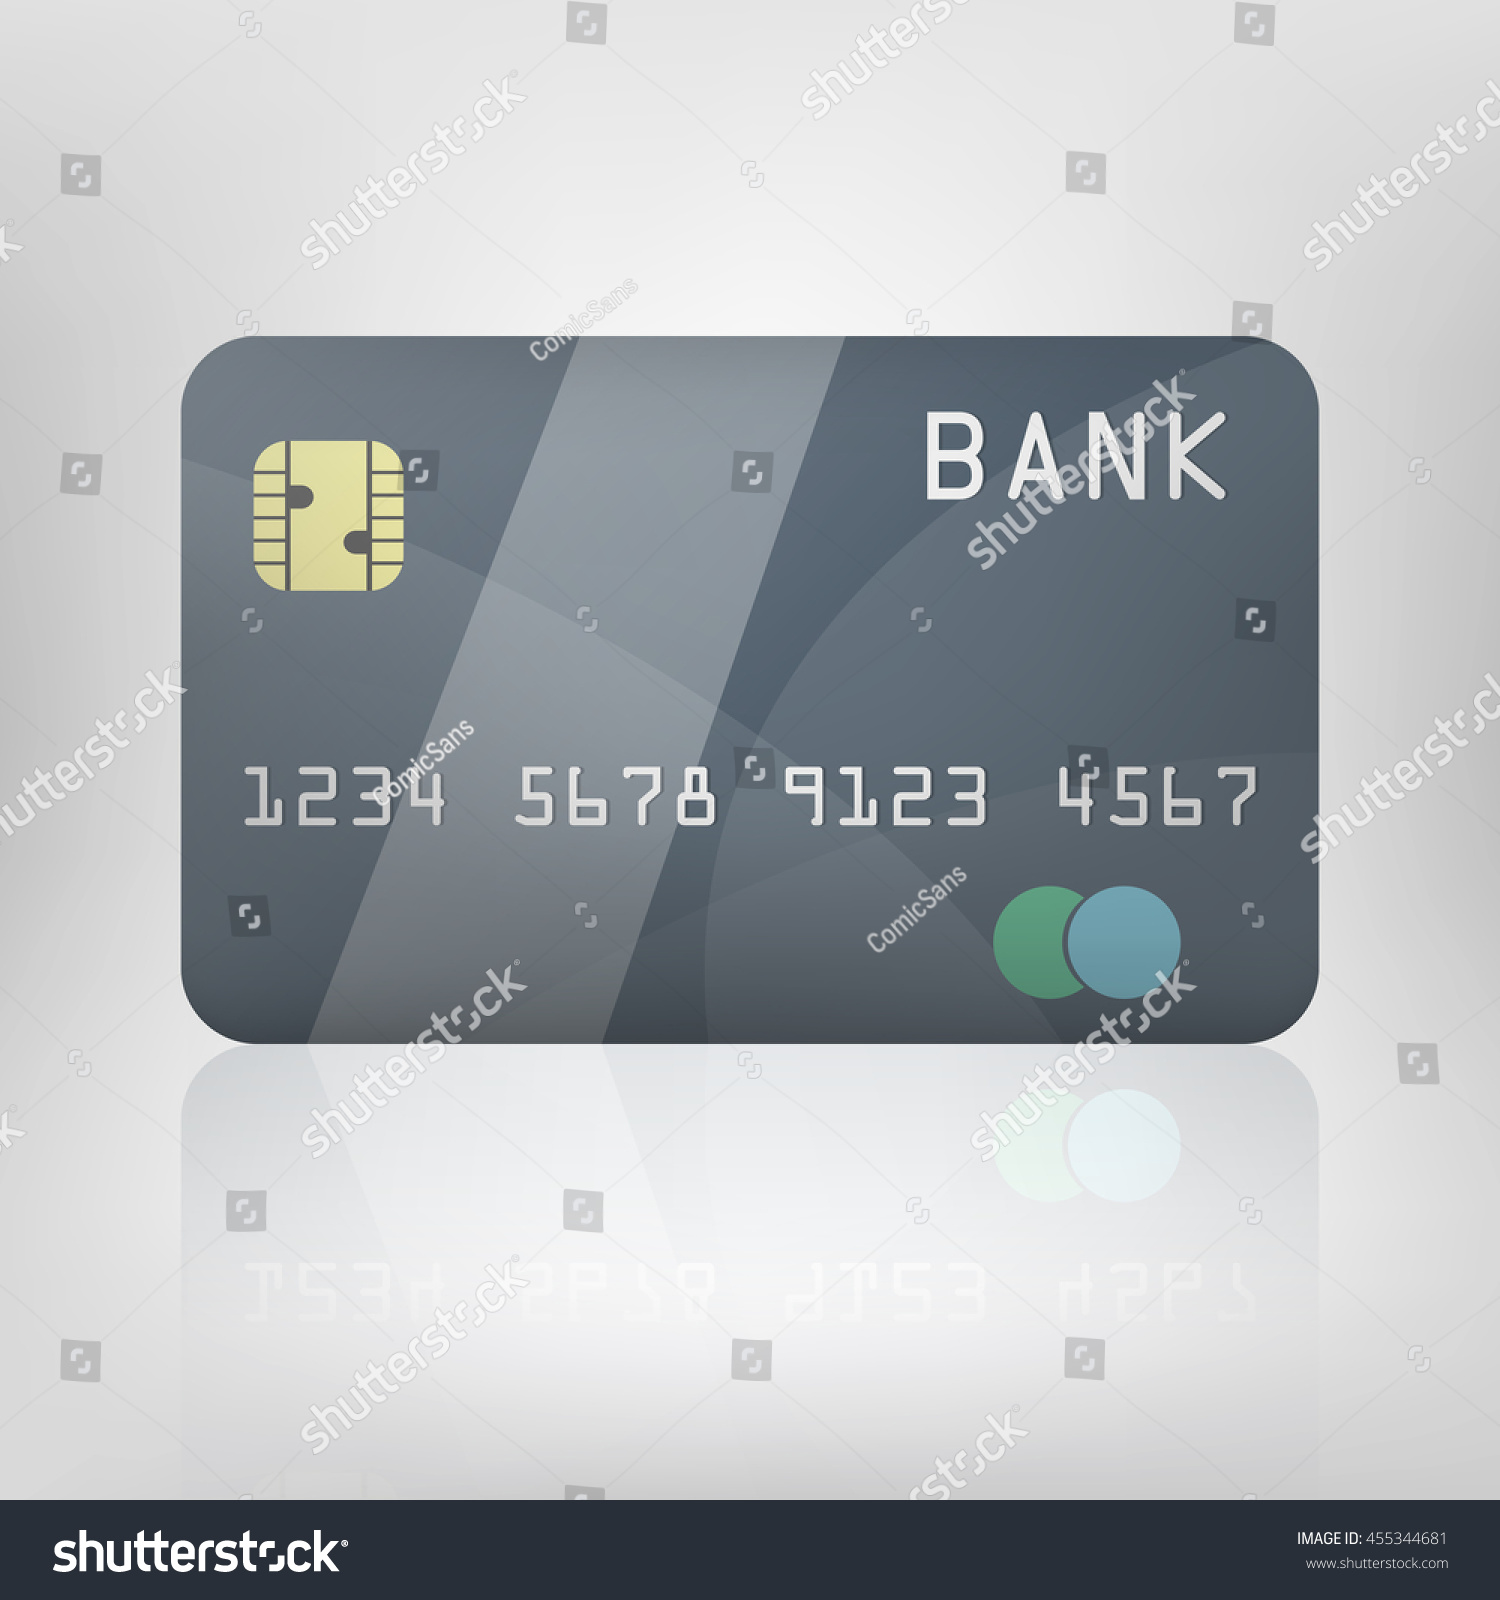 vector realistic illustration credit card business stock vector